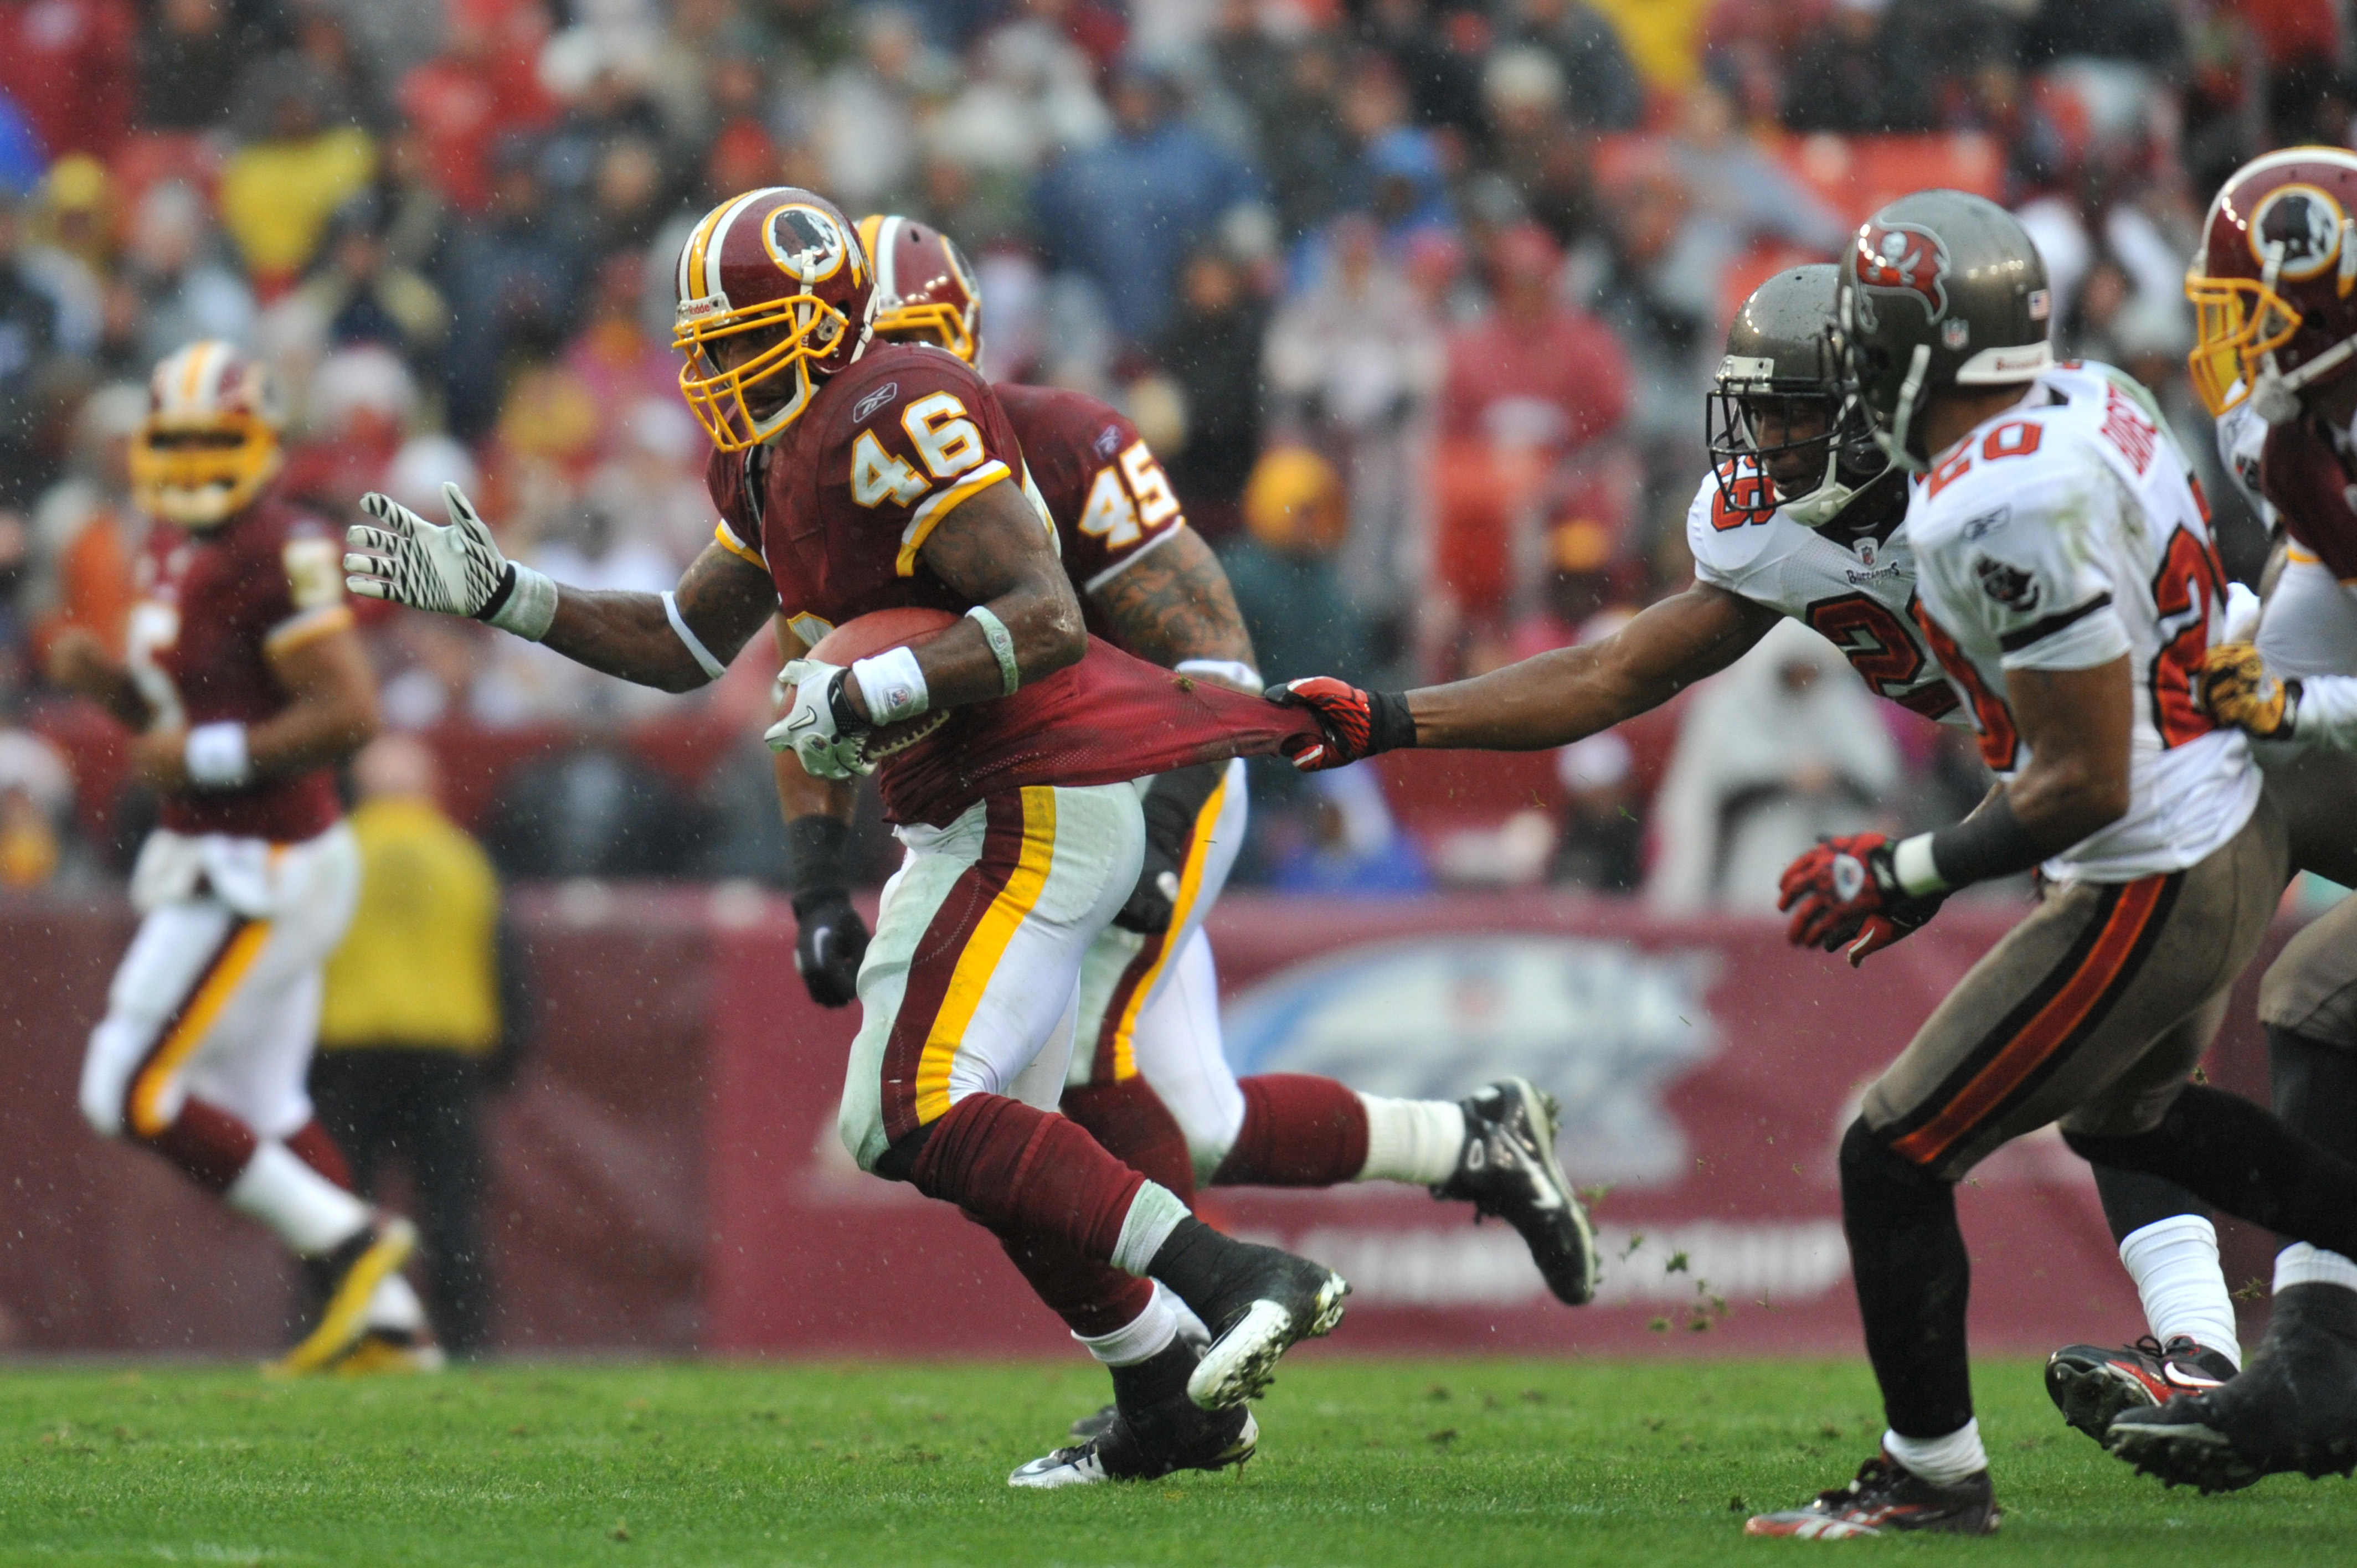 LANDOVER, MD - DECEMBER 12:  Ryan Torain #46 of the Washington Redskins runs the ball against the Tampa Bay Buccaneers  at FedExField on December 12, 2010 in Landover, Maryland. The Buccaneers defeated the Redskins 17-16. (Photo by Larry French/Getty Imag